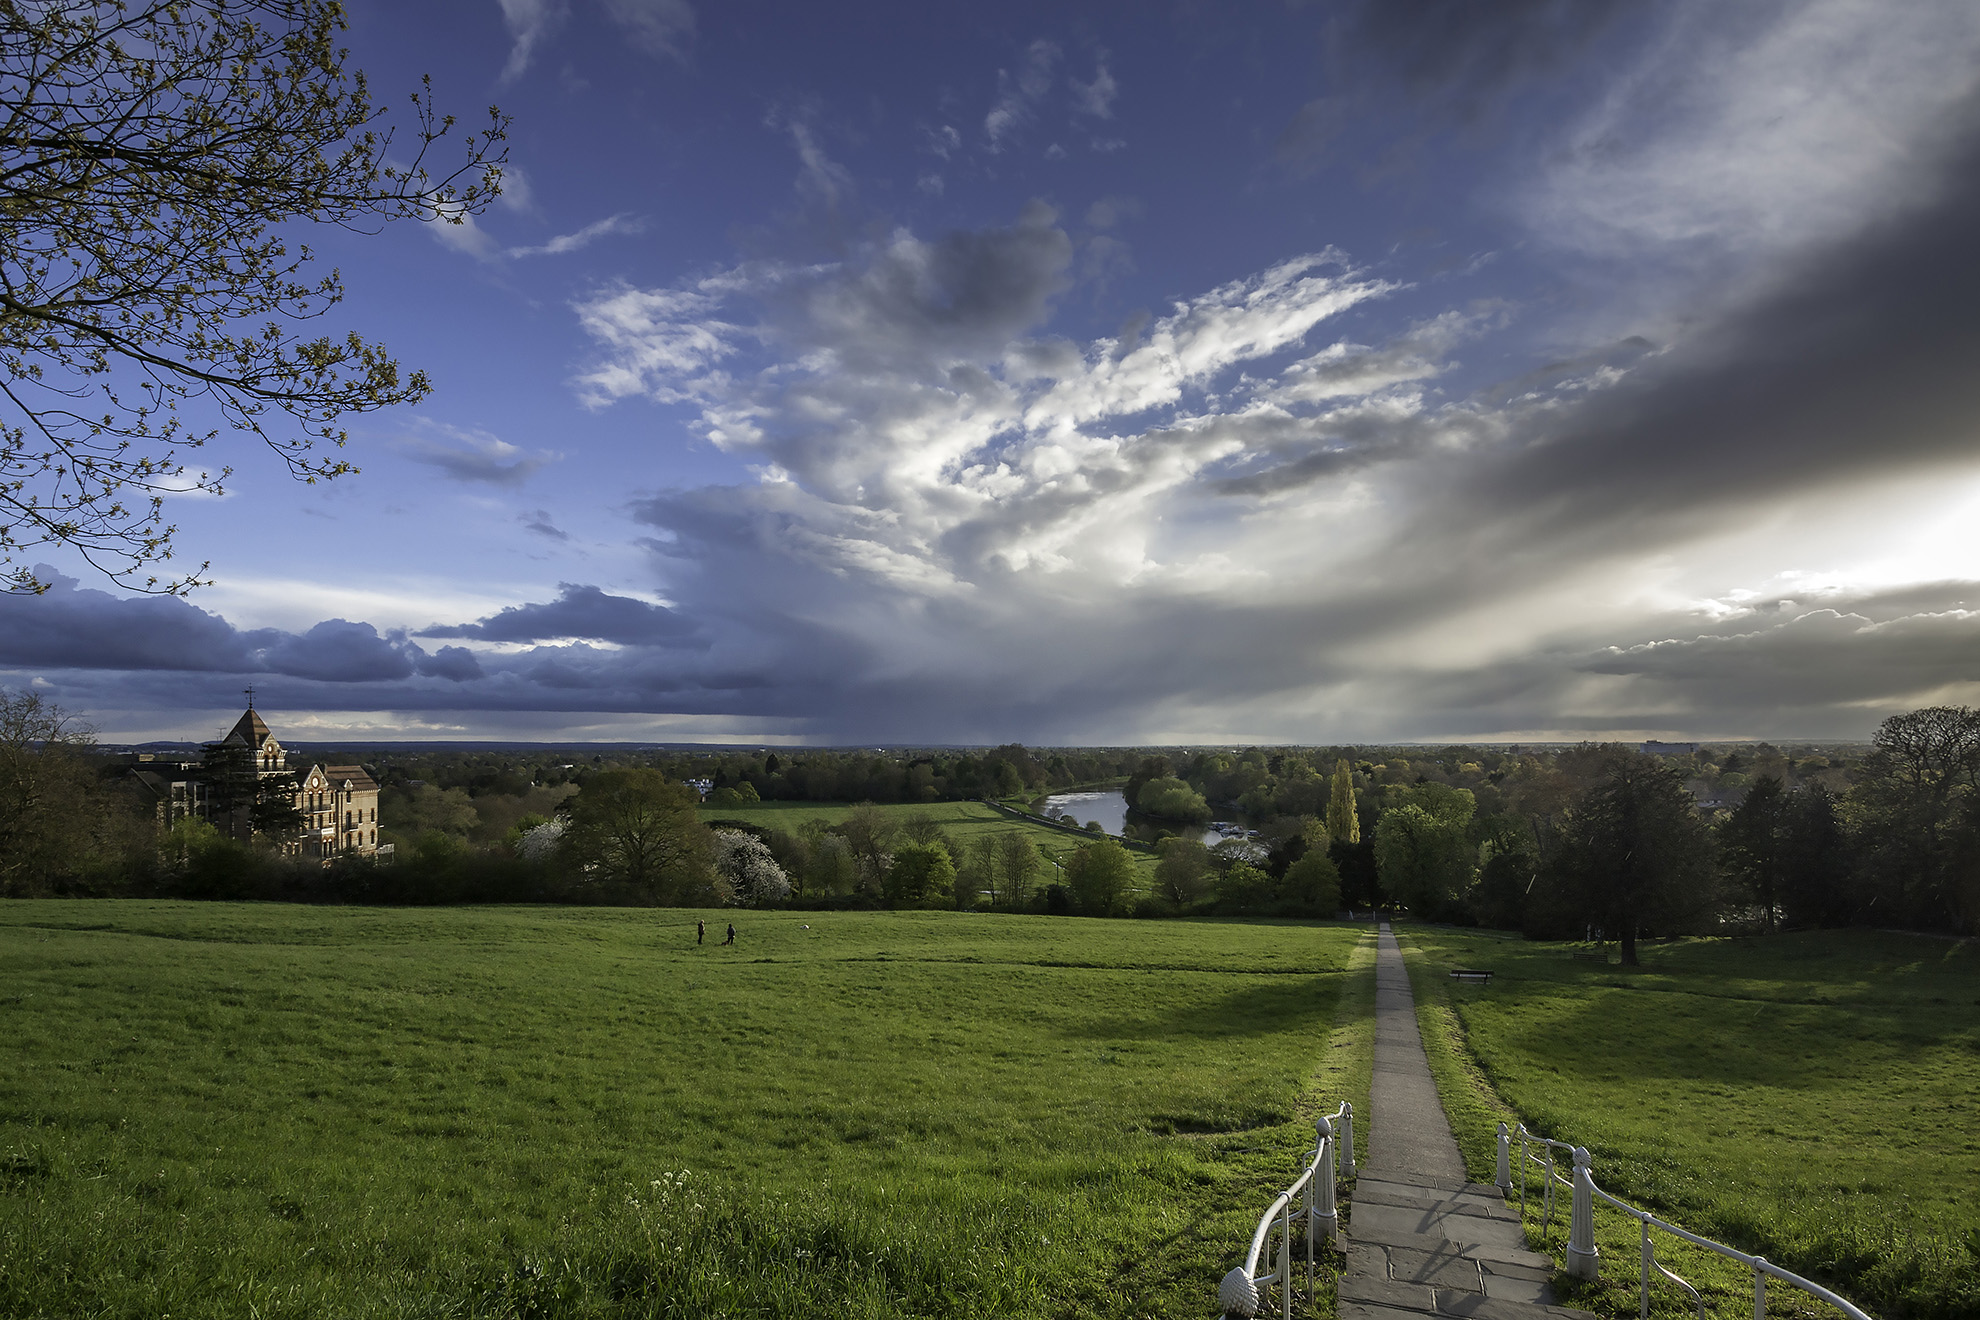 The View that inspired Turner - Richmond Hill - Web Ready.jpg